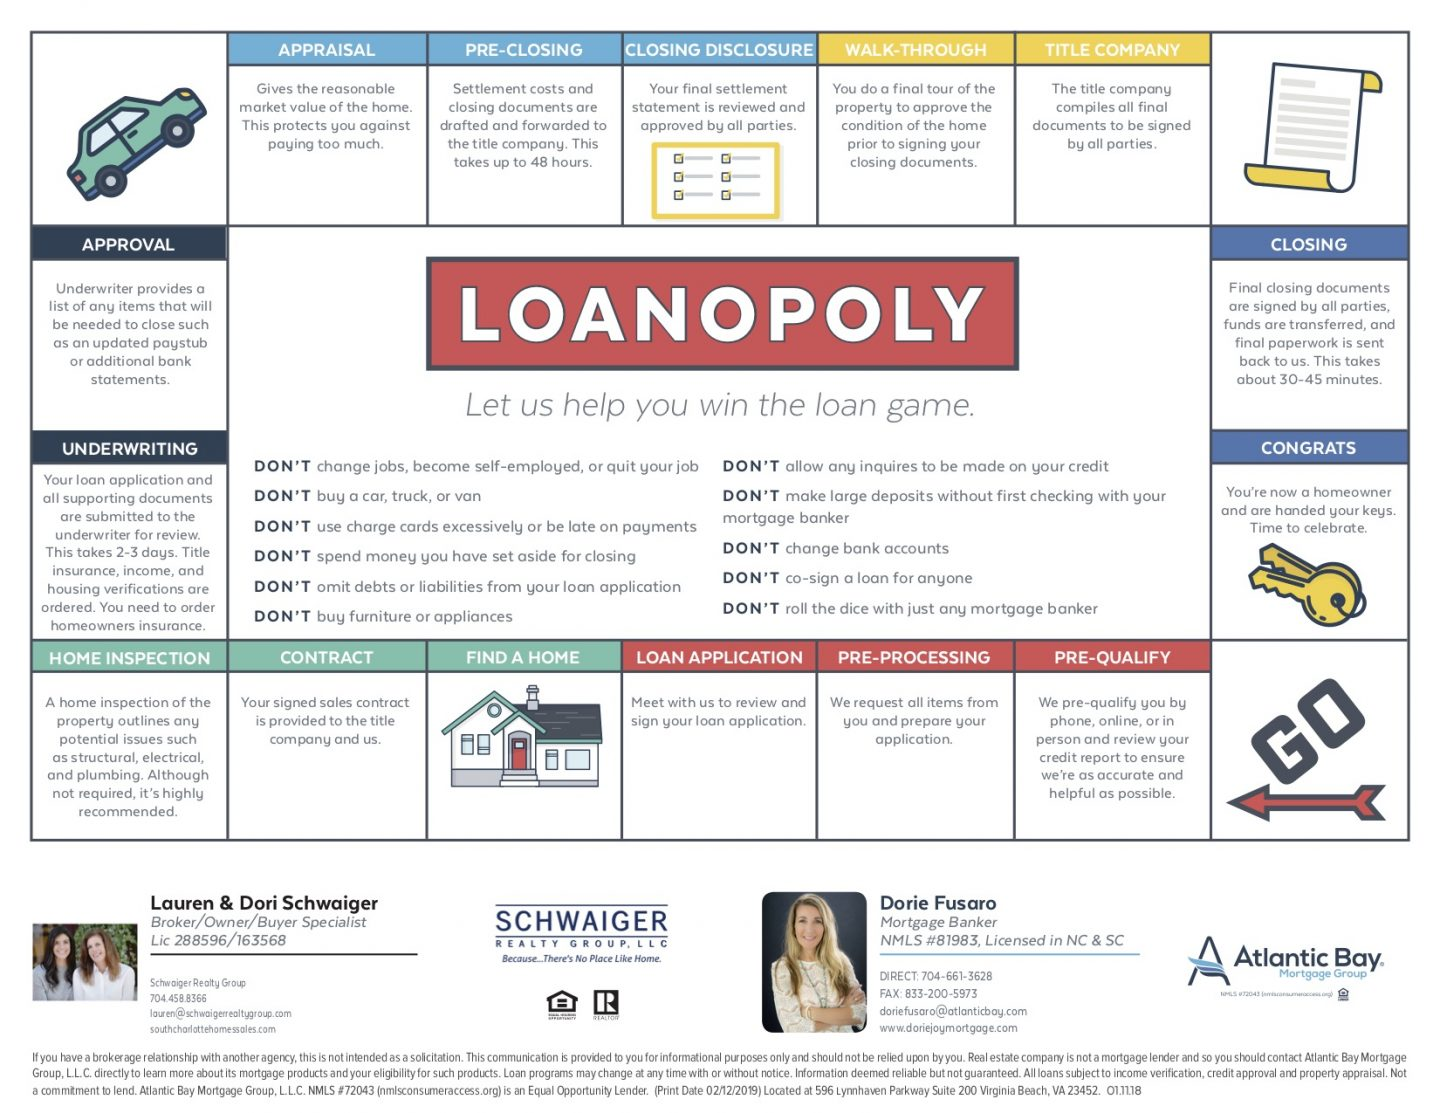 Everything You Need to Know About The Loan Process - Schwaiger Realty Group